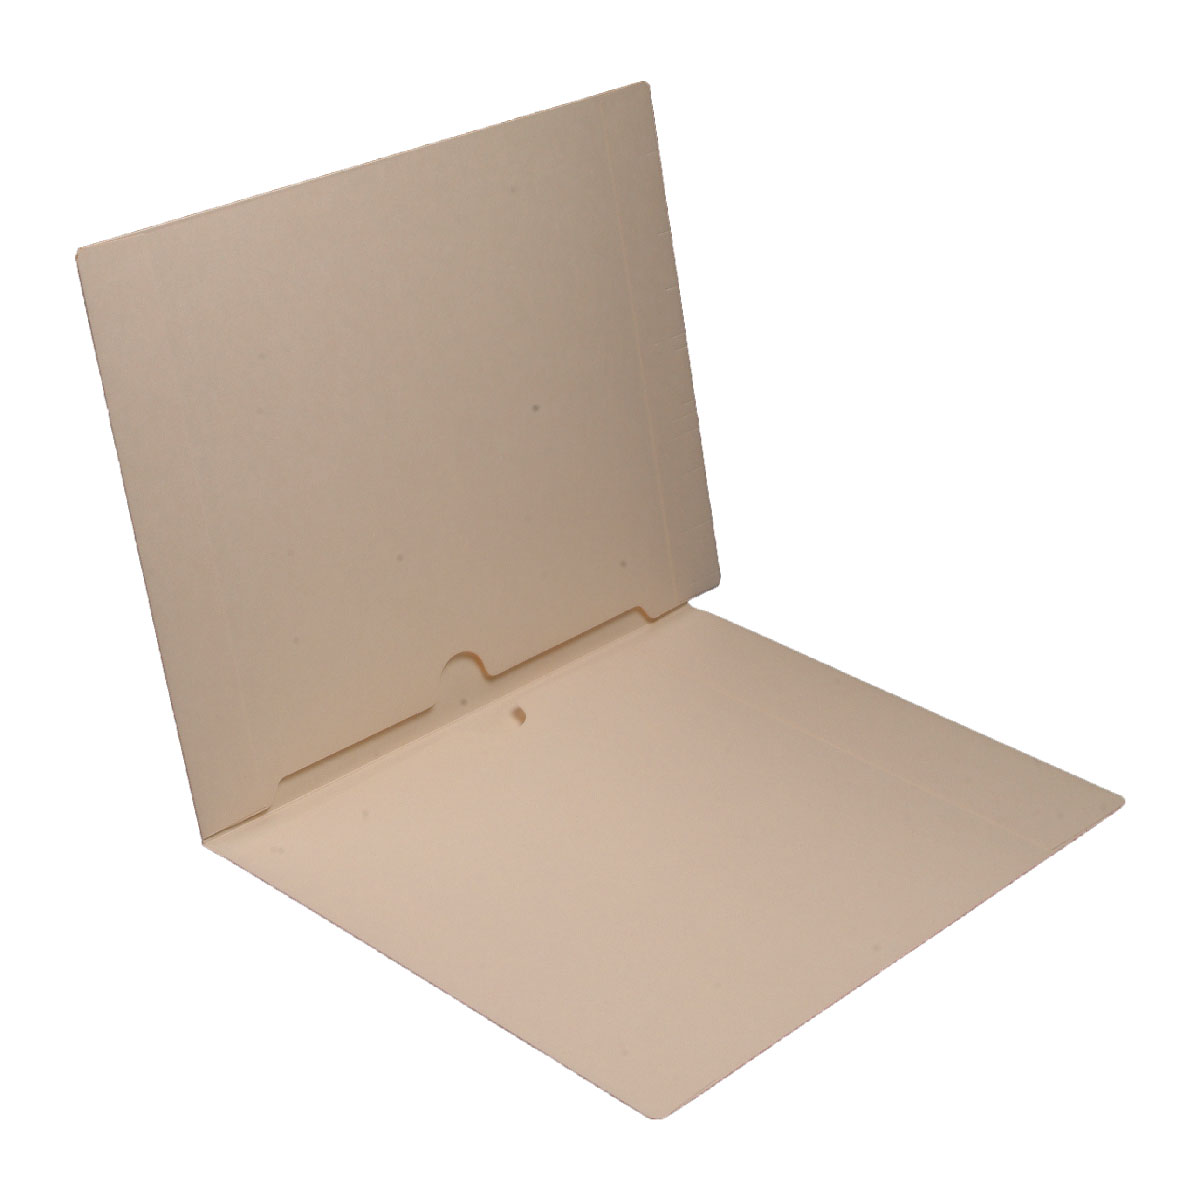 S-9067 - 11 pt Manila Folders, Full Cut End Tab, Letter Size, Full Pocket Front and Back (Box of 50)